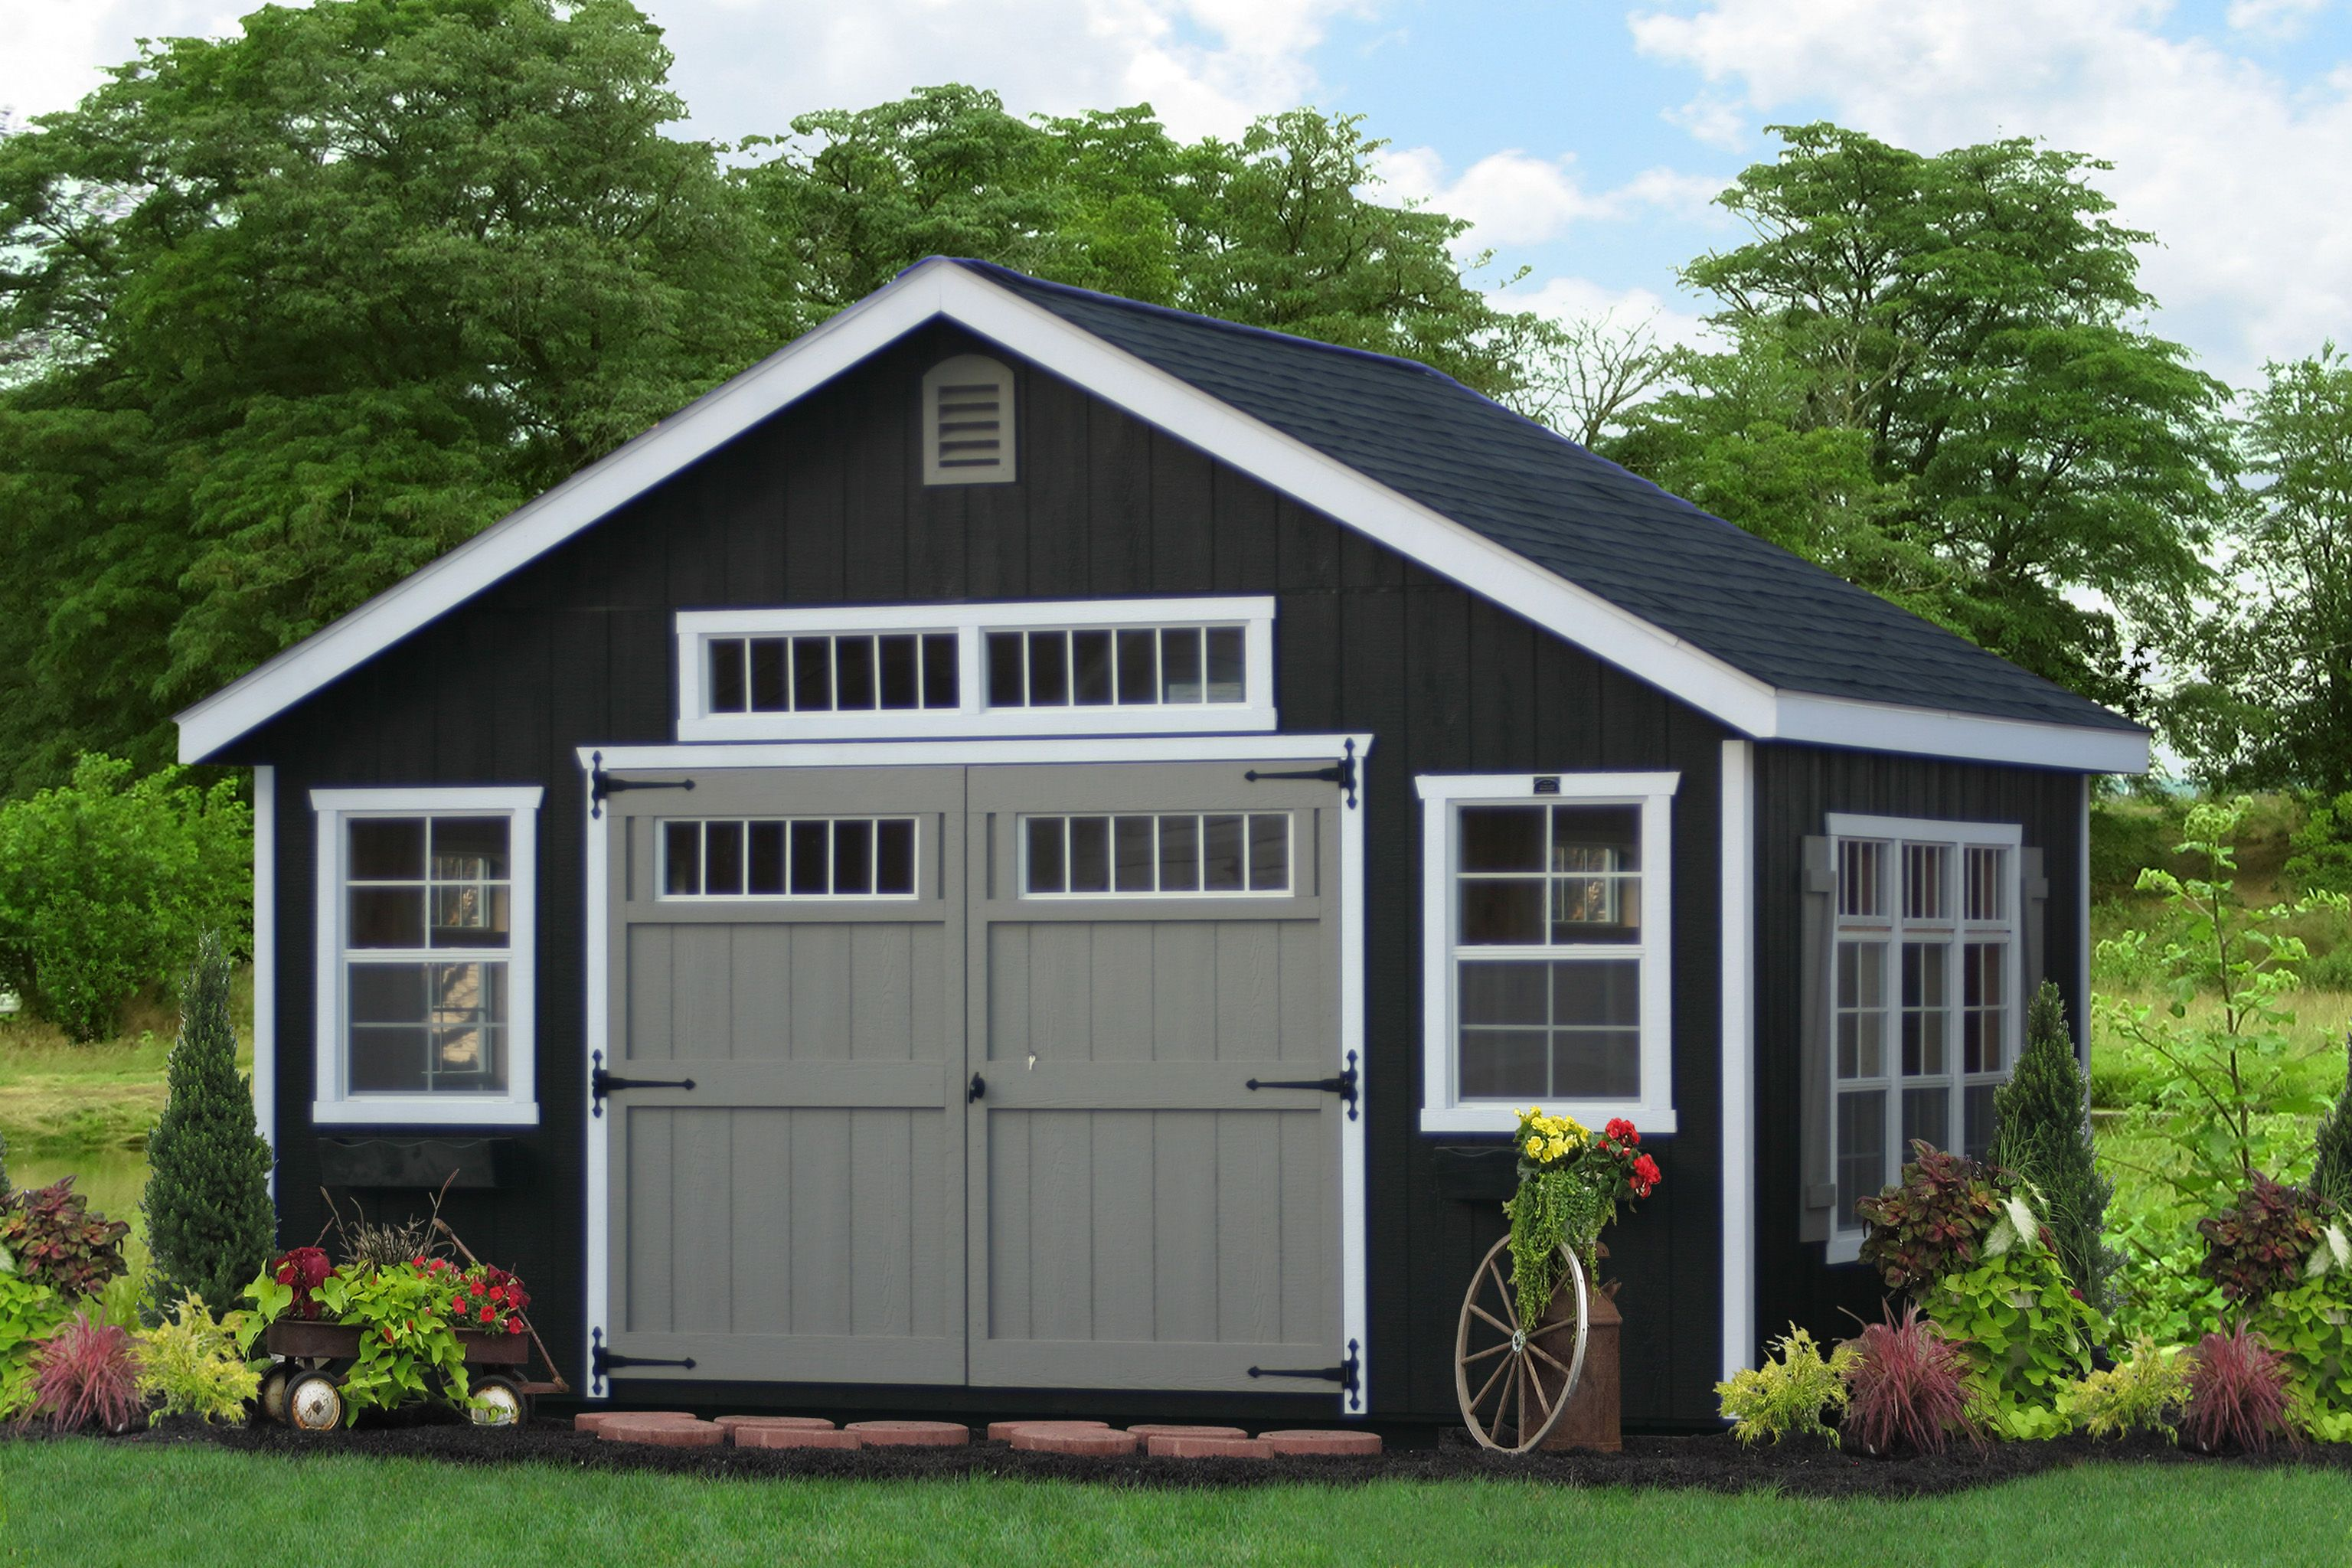 buying garden sheds - Garden Sheds Nj